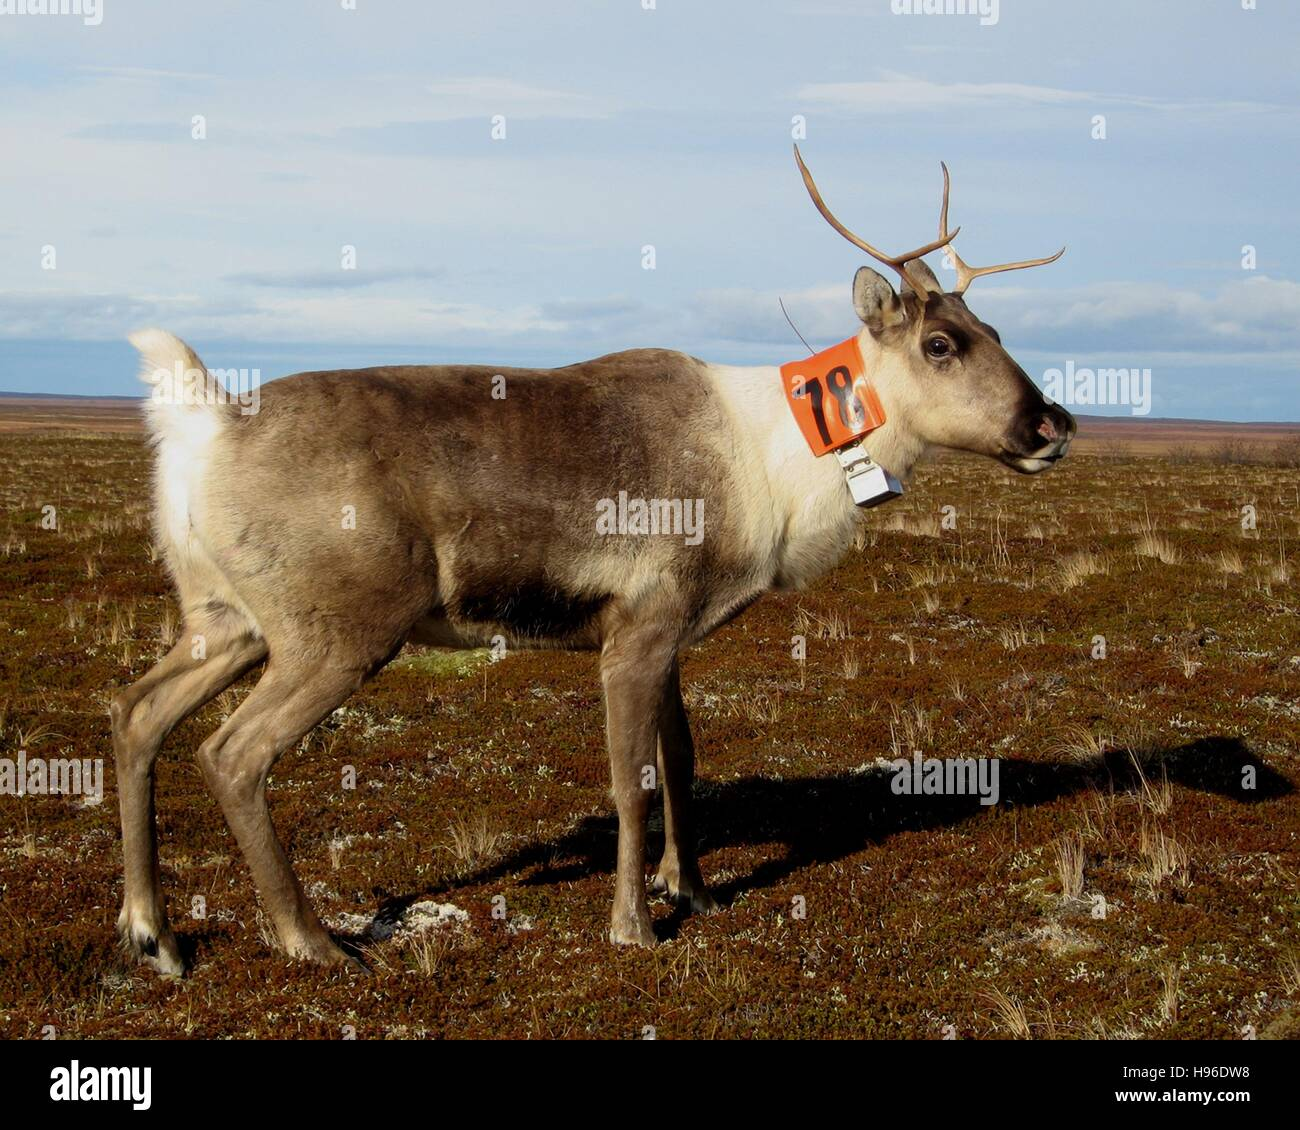 A tagged, collared caribou grazes on in the plains at the Becharof National Wildlife Refuge October 26, 2007 in Stock Photo